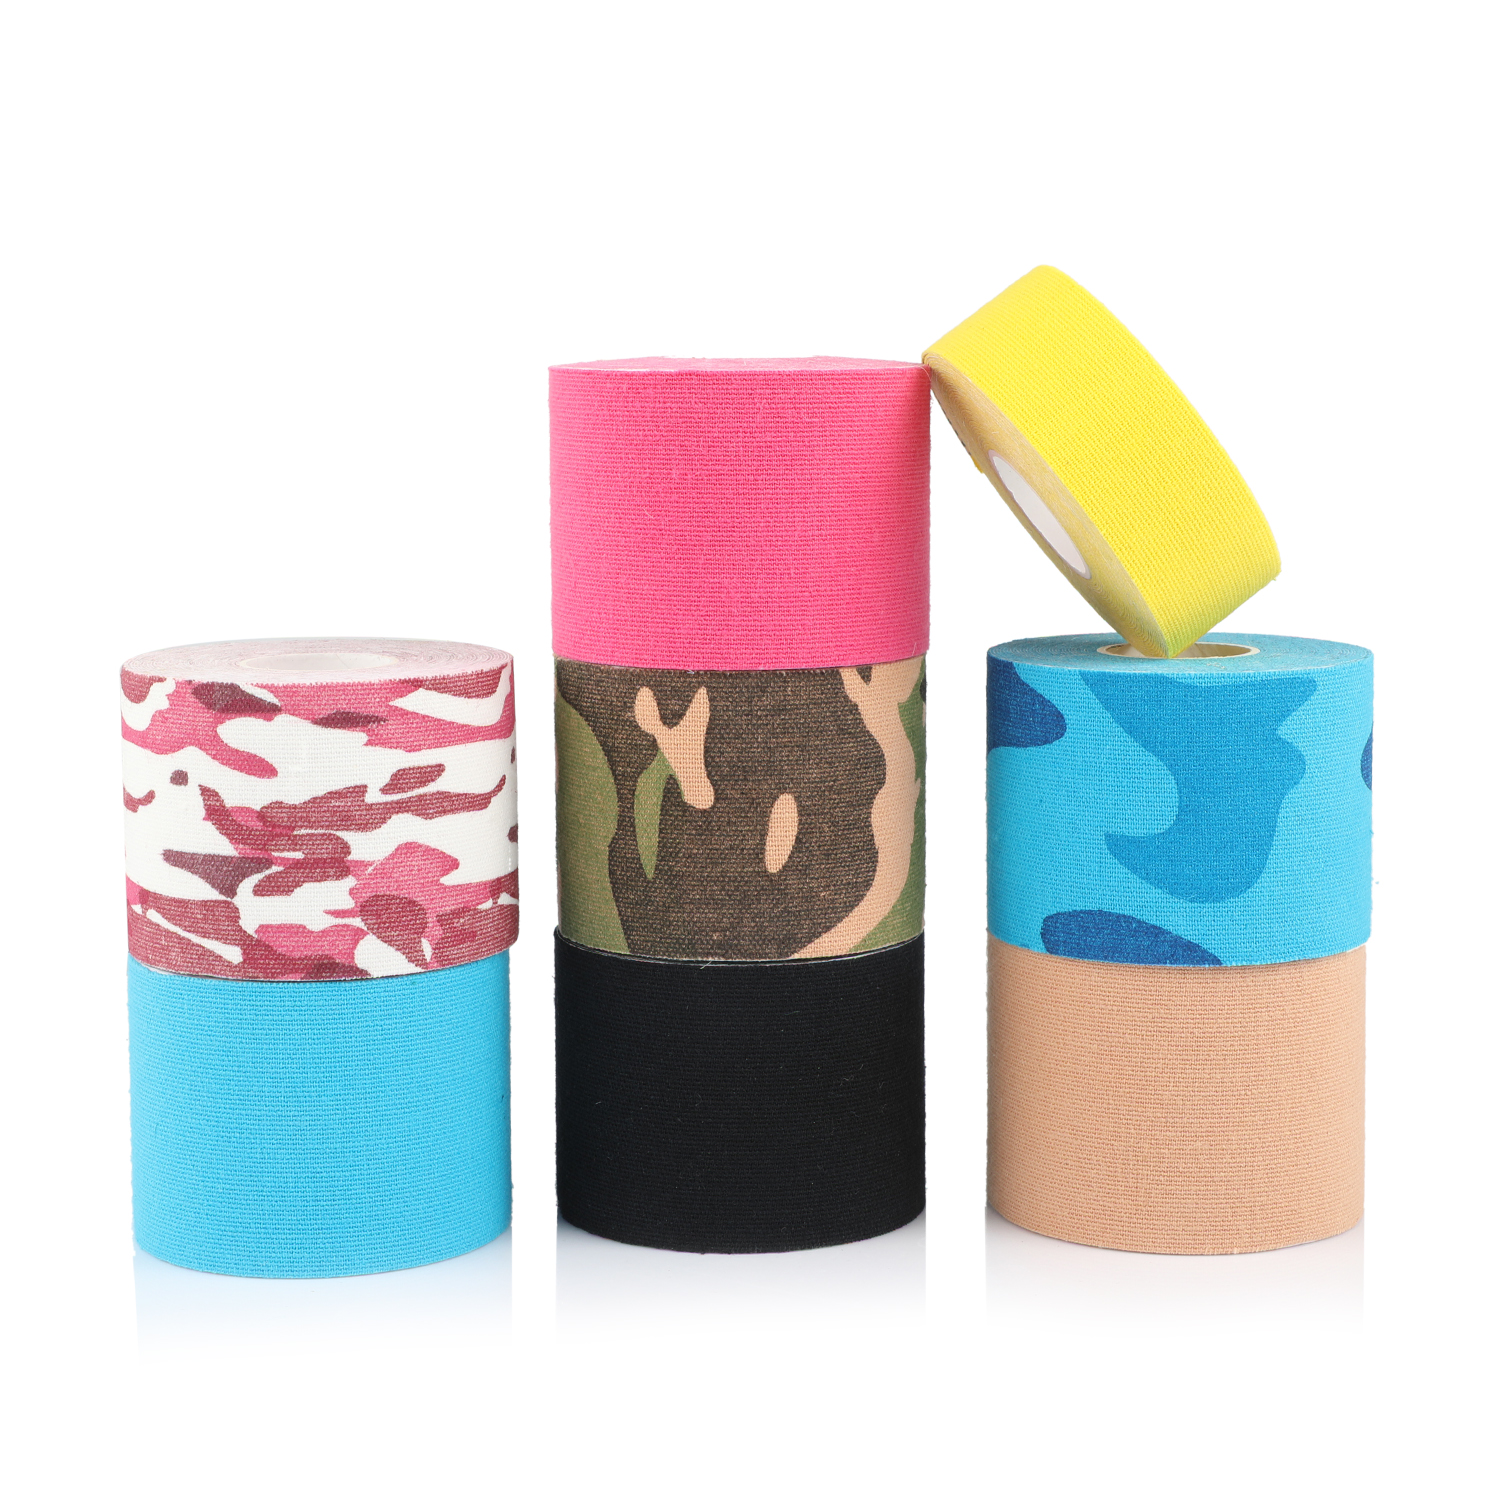 Kinesio Tape 5cm*5m Sports Kinesiology Cotton Adhesive Injury Muscle Tape Strain Protection Taping Bandage Kinesio Kinesiotaping 5cm 5m elastic bandage cotton adhesive kinesio tape sport injury muscle strain protection tape tape kinesiology for sport